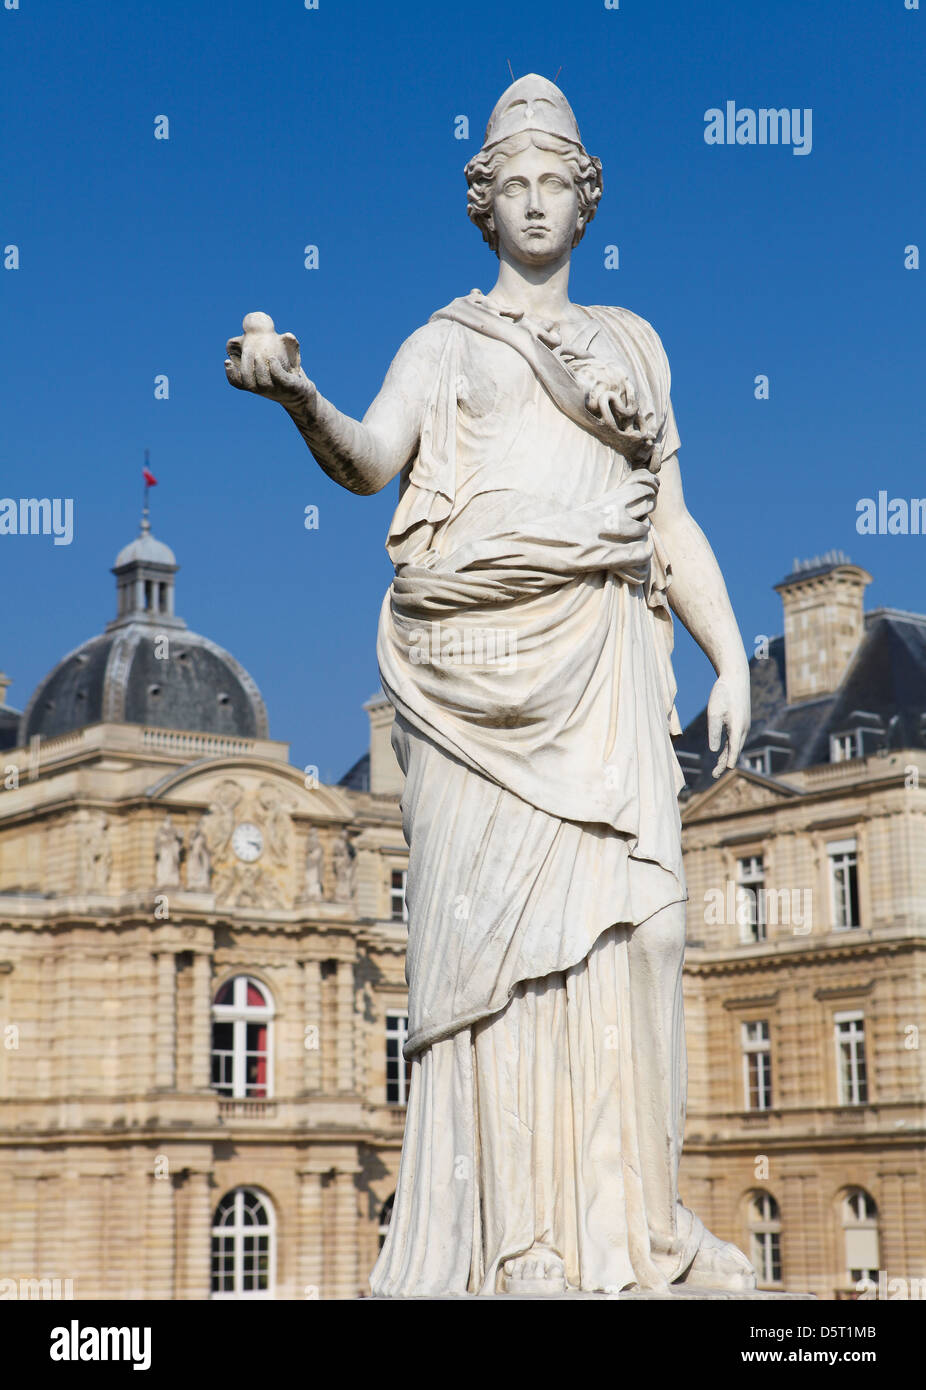 Statue of Minerva (equated with the Greek goddess Athena) at the Jardin de Luxembourg in Paris, France. - Stock Image